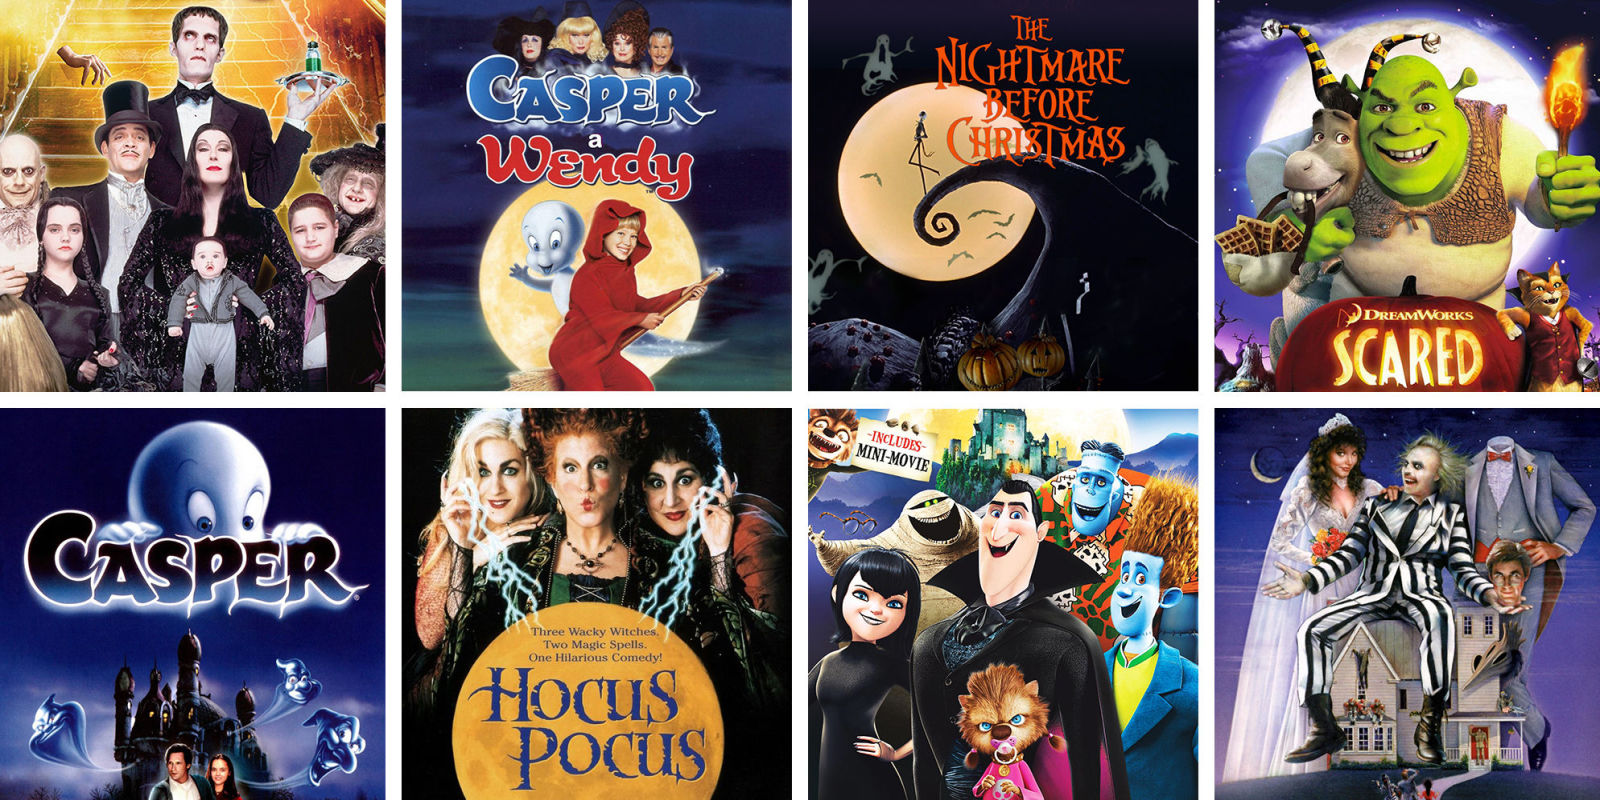 20 best halloween movies for kids silly and scary kids halloween movies - Halloween Movies About Witches